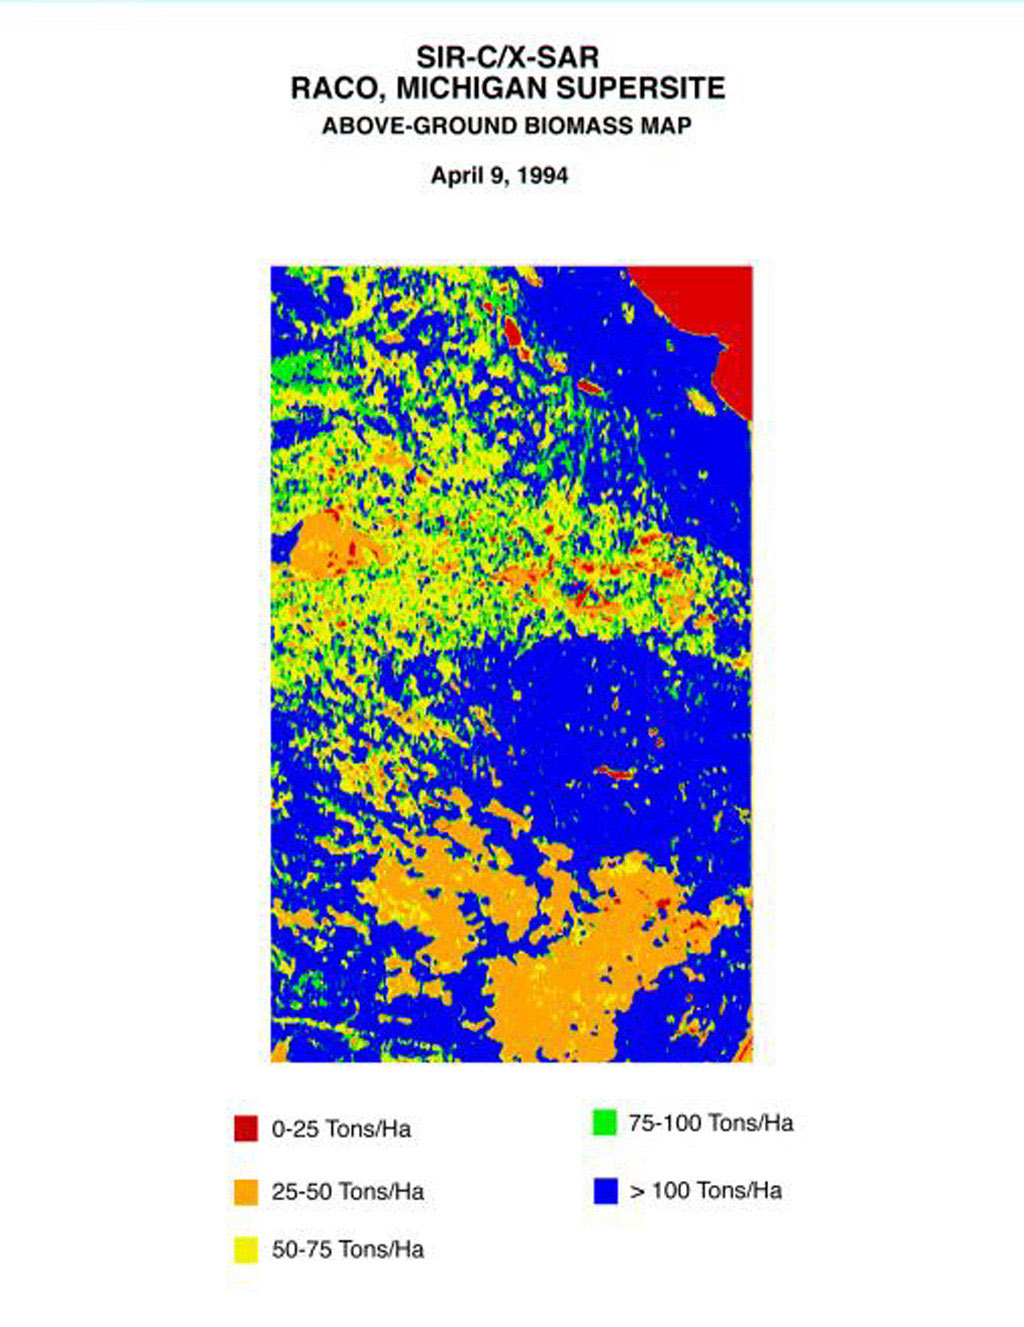 This biomass map of the Raco, Michigan, area was produced from data acquired by NASA's Spaceborne Imaging Radar C/X-Band Synthetic Aperture Radar onboard space shuttle Endeavour.